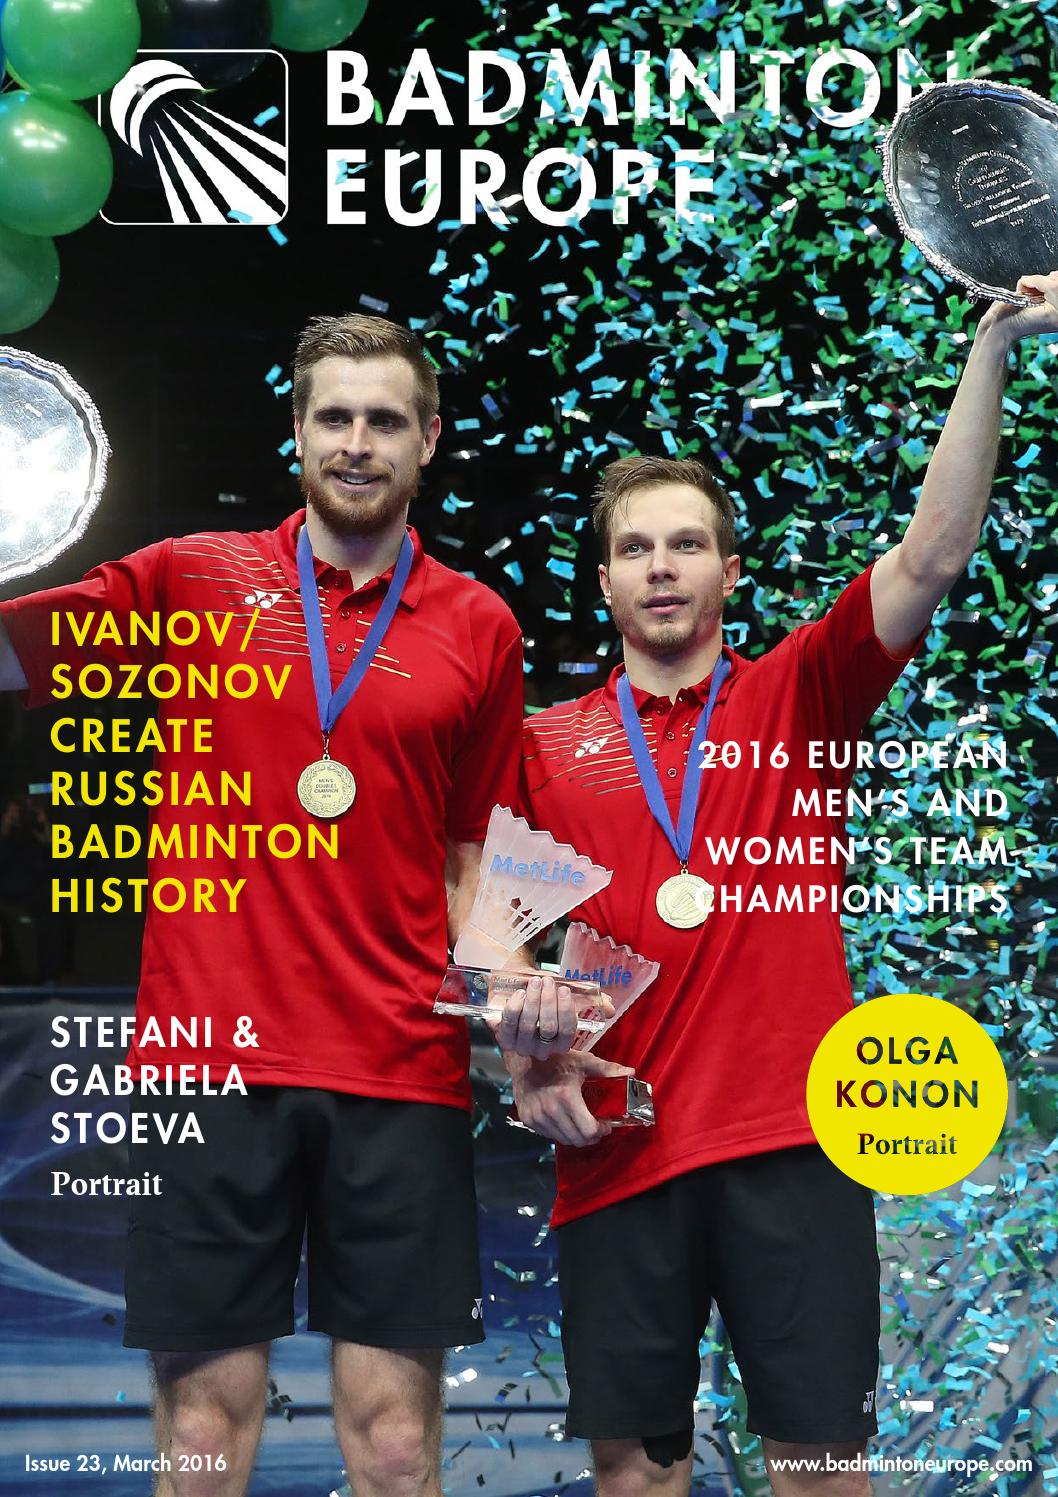 Badminton Europe magazine 22 March by Badminton Europe issuu